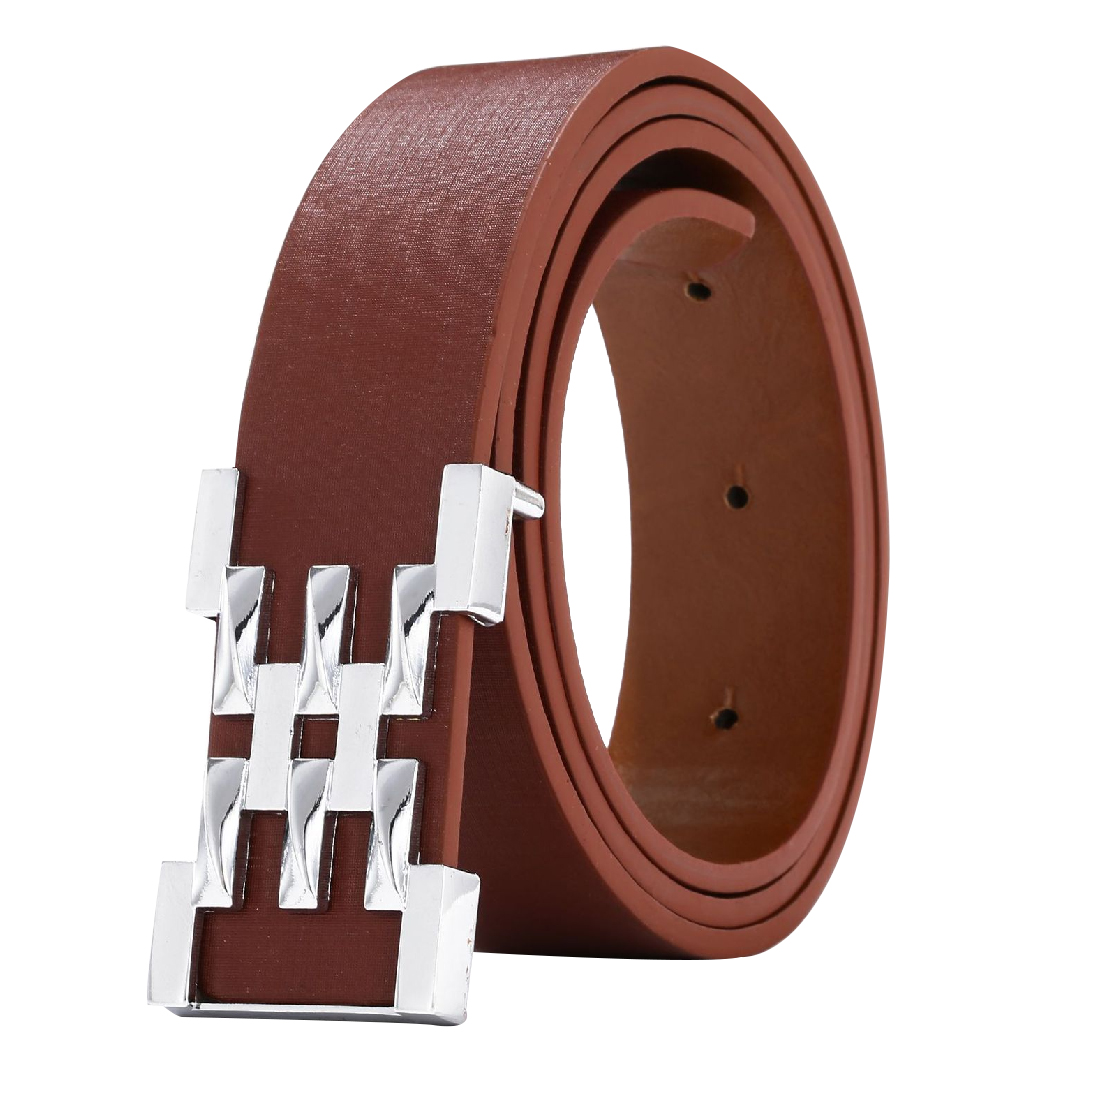 2019 New Genuine Leather Designer Men Belts High Quality Smooth Buckle Belt Leather Belt Buckle Belts for Men Women Leisure in Men 39 s Belts from Apparel Accessories